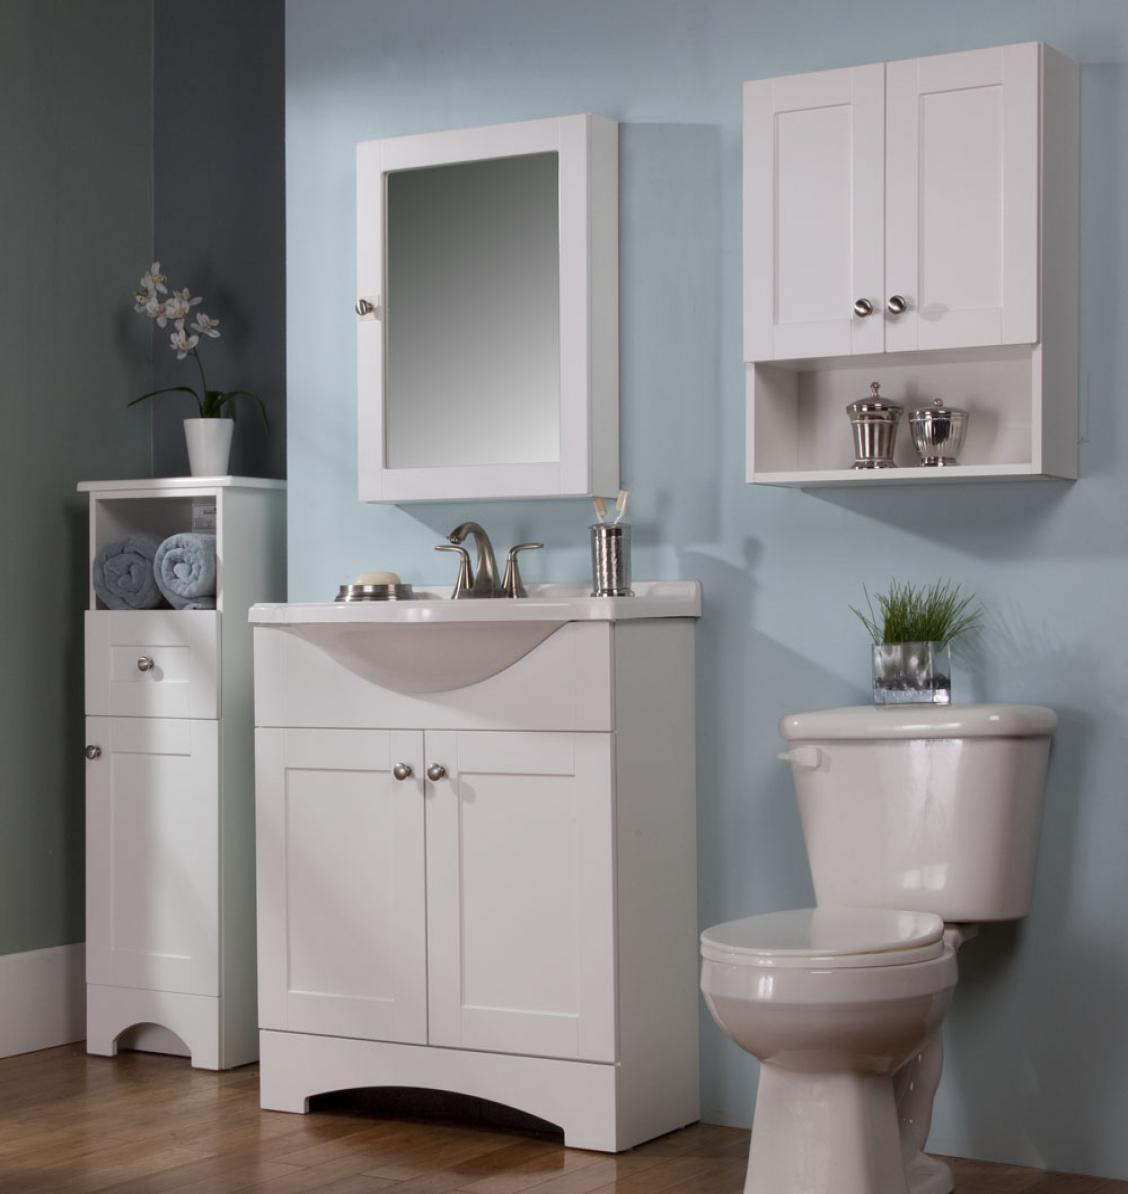 how to install a bathroom cabinet how to install a recessed bathroom cabinet in the wall 17020